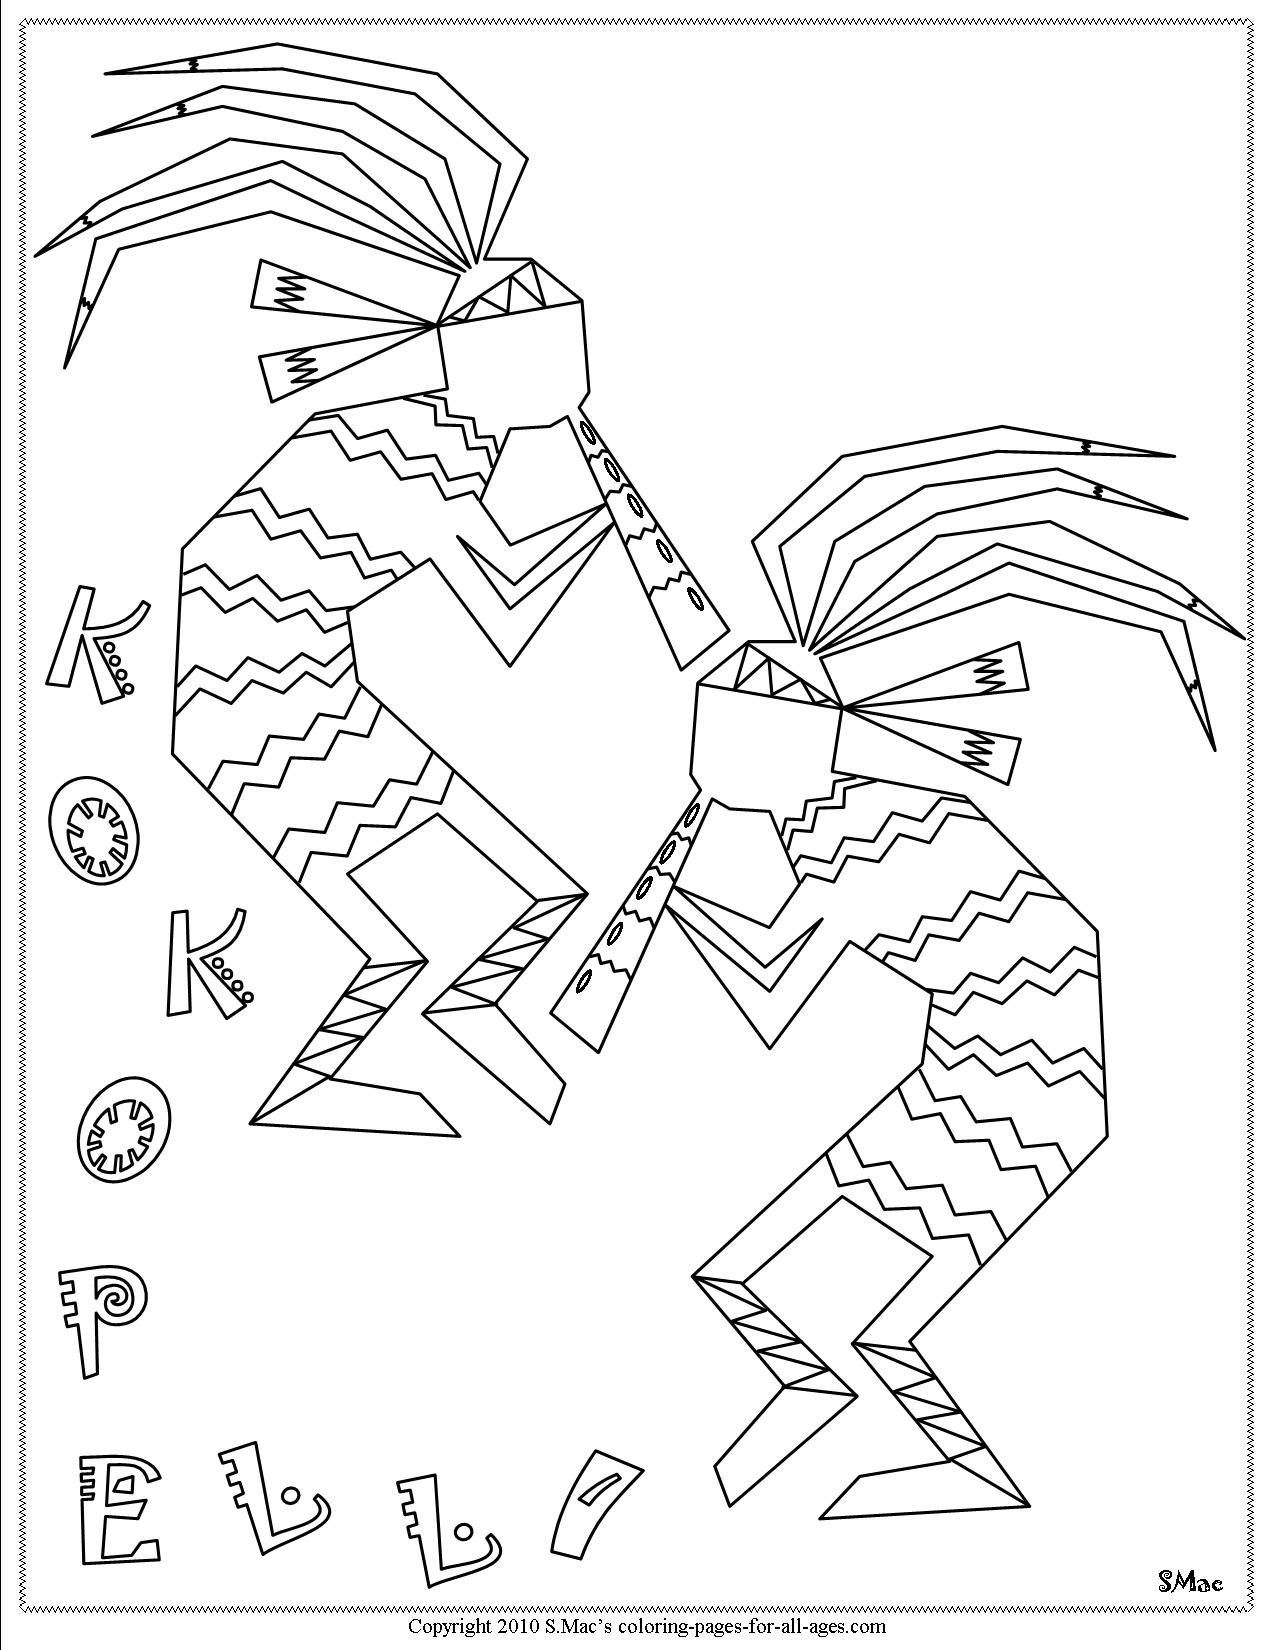 Kokopelli Coloring Pages Native American Symbols American Symbols Pattern Coloring Pages